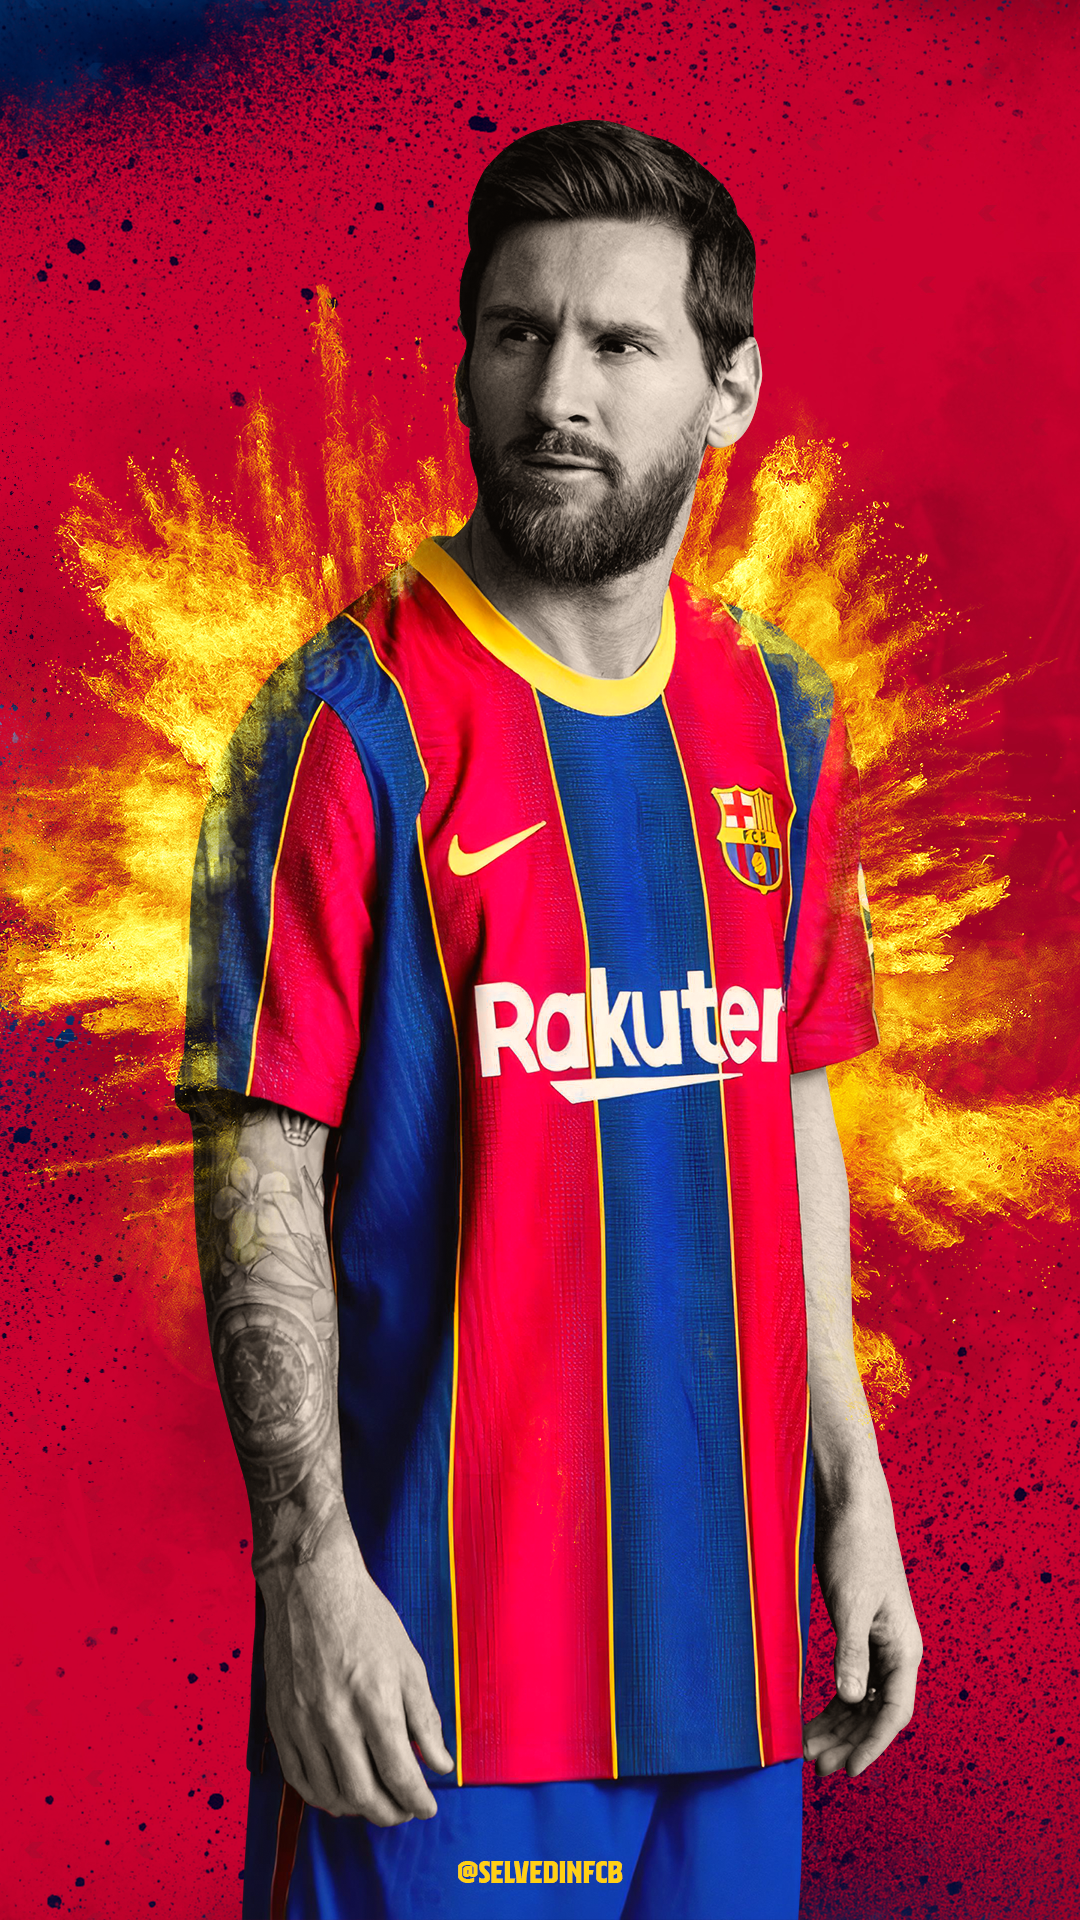 Lionel Messi 2021 4k Wallpaper By Selvedinfcb On Deviantart